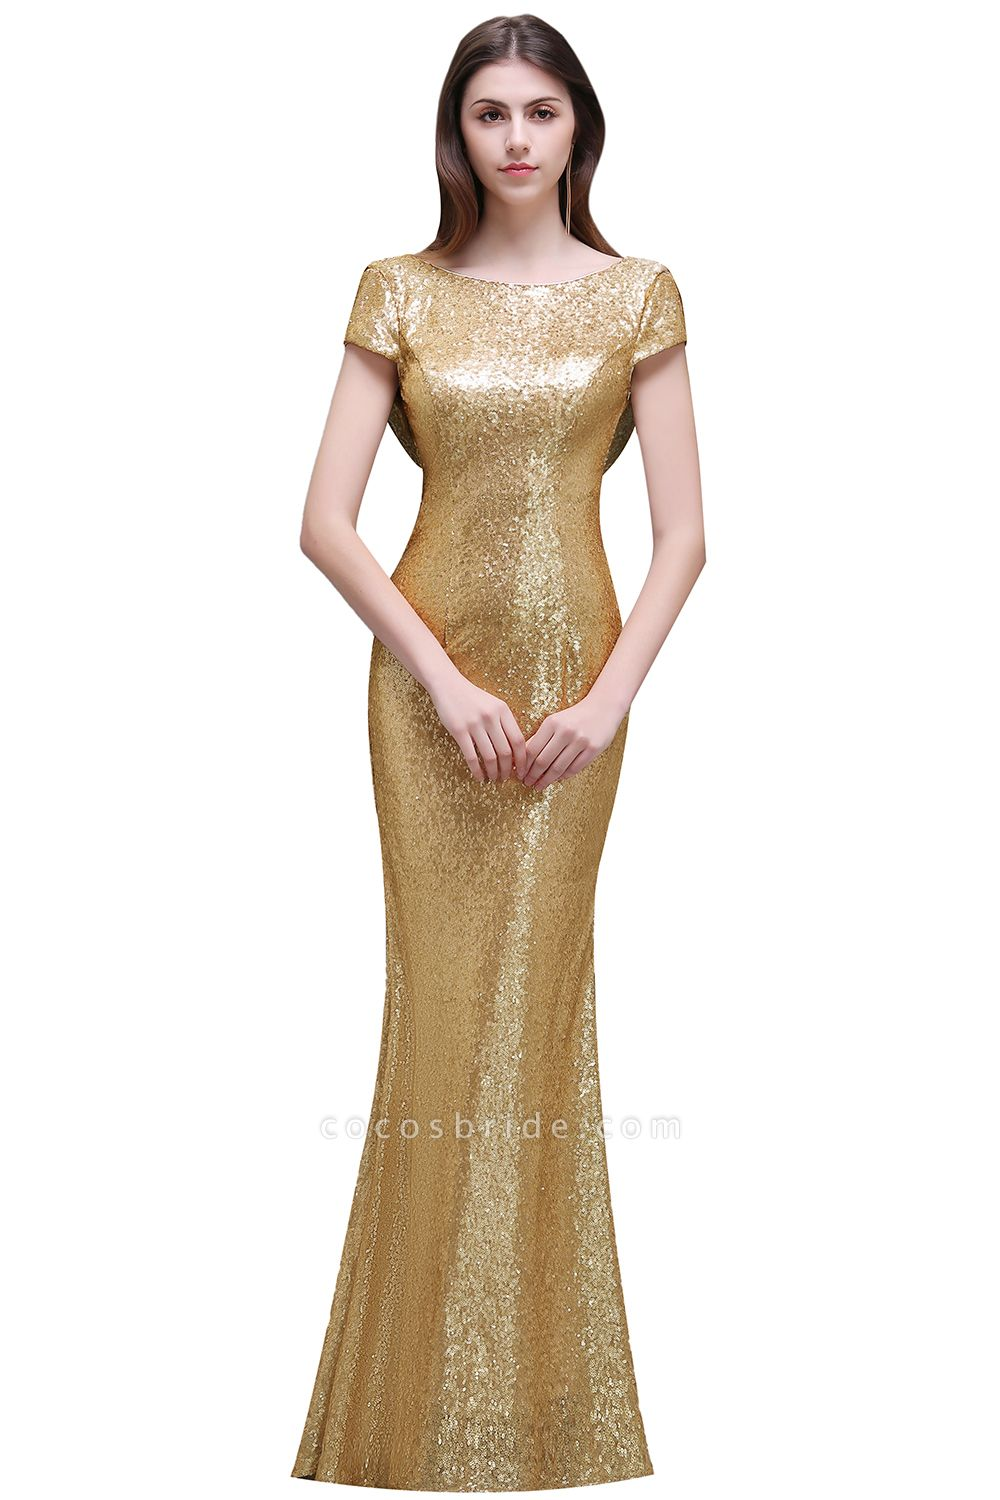 Women Sparkly Rose Gold Long Sequins Bridesmaid Dresses Prom/Evening Gowns